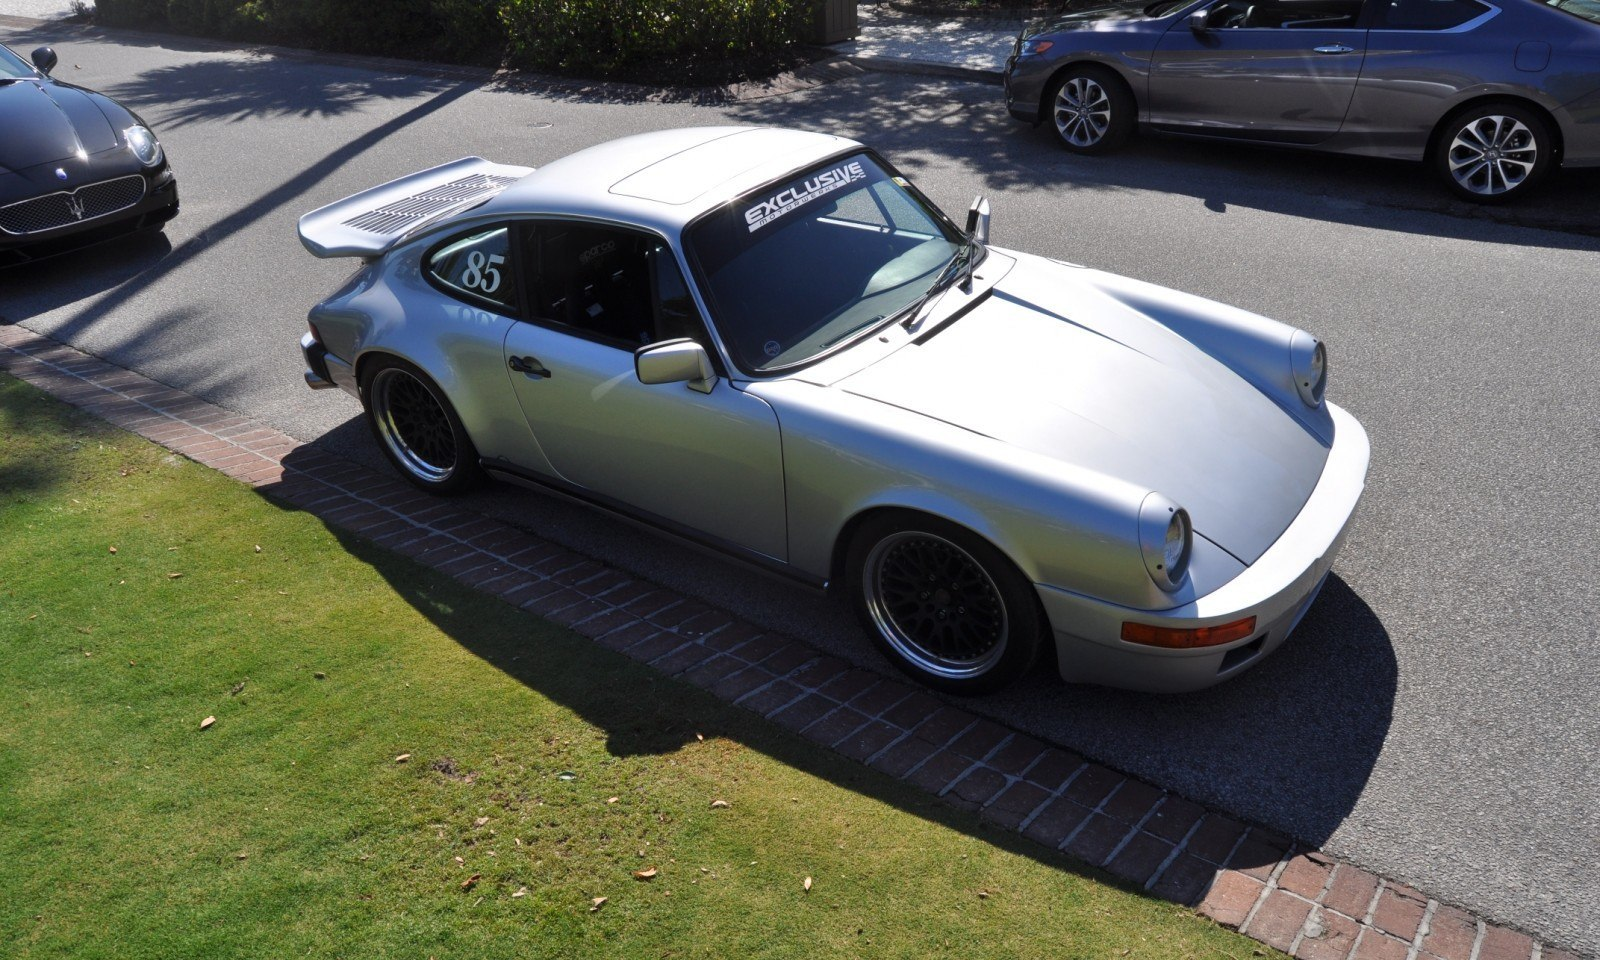 Track-Prepped Porsche 986 911 Whale Tale Is Mighty Desirable Machine 18